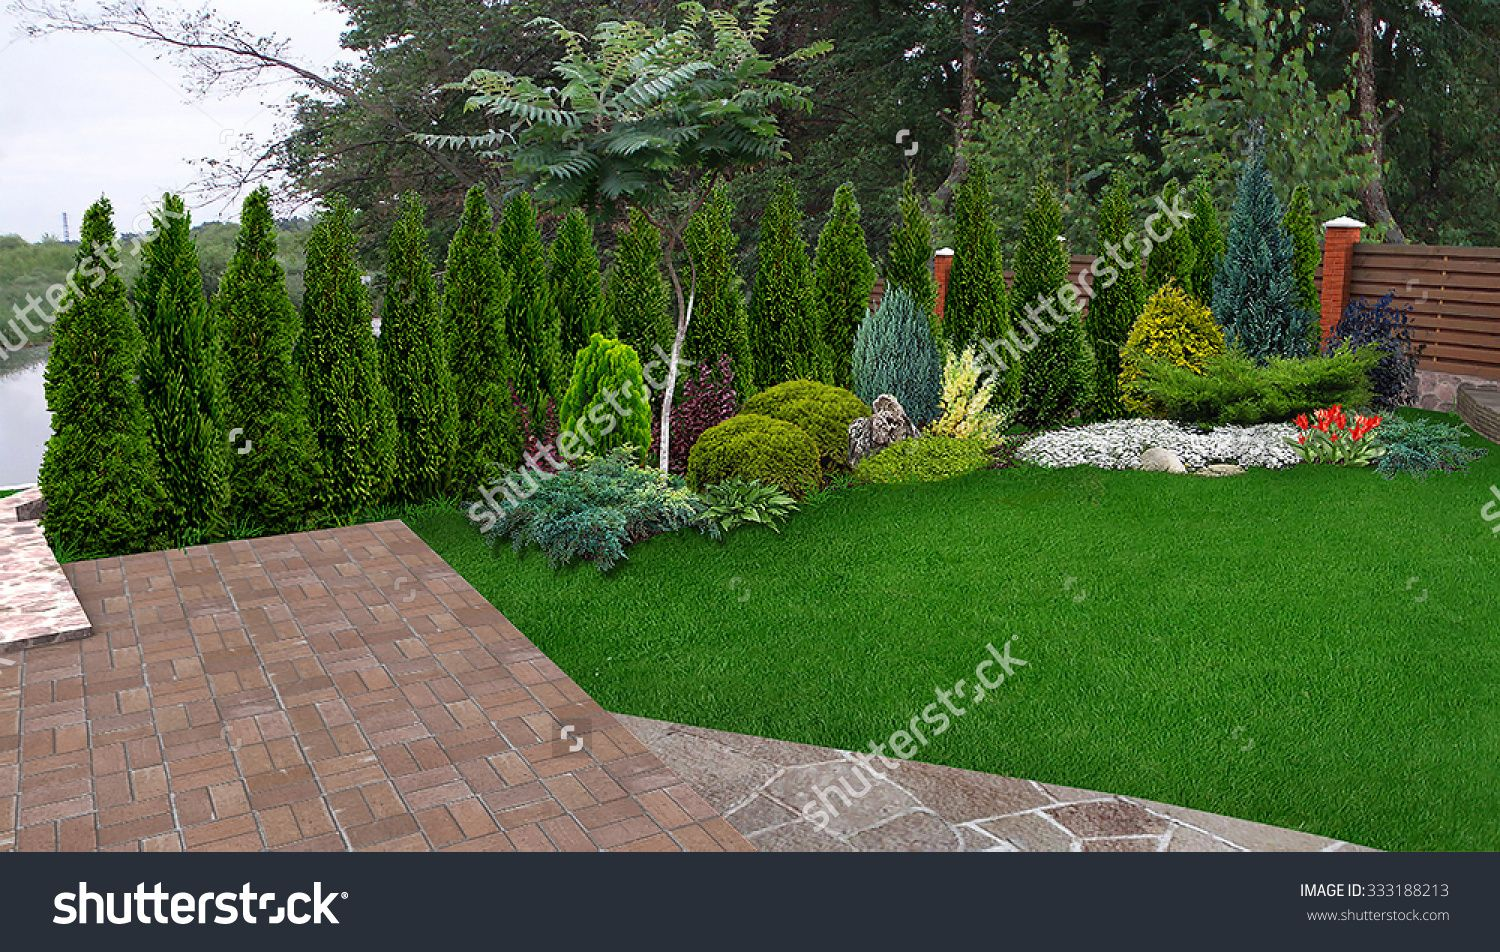 Garden Design with Landscaping Evergreen Privacy Screen, d Render ...